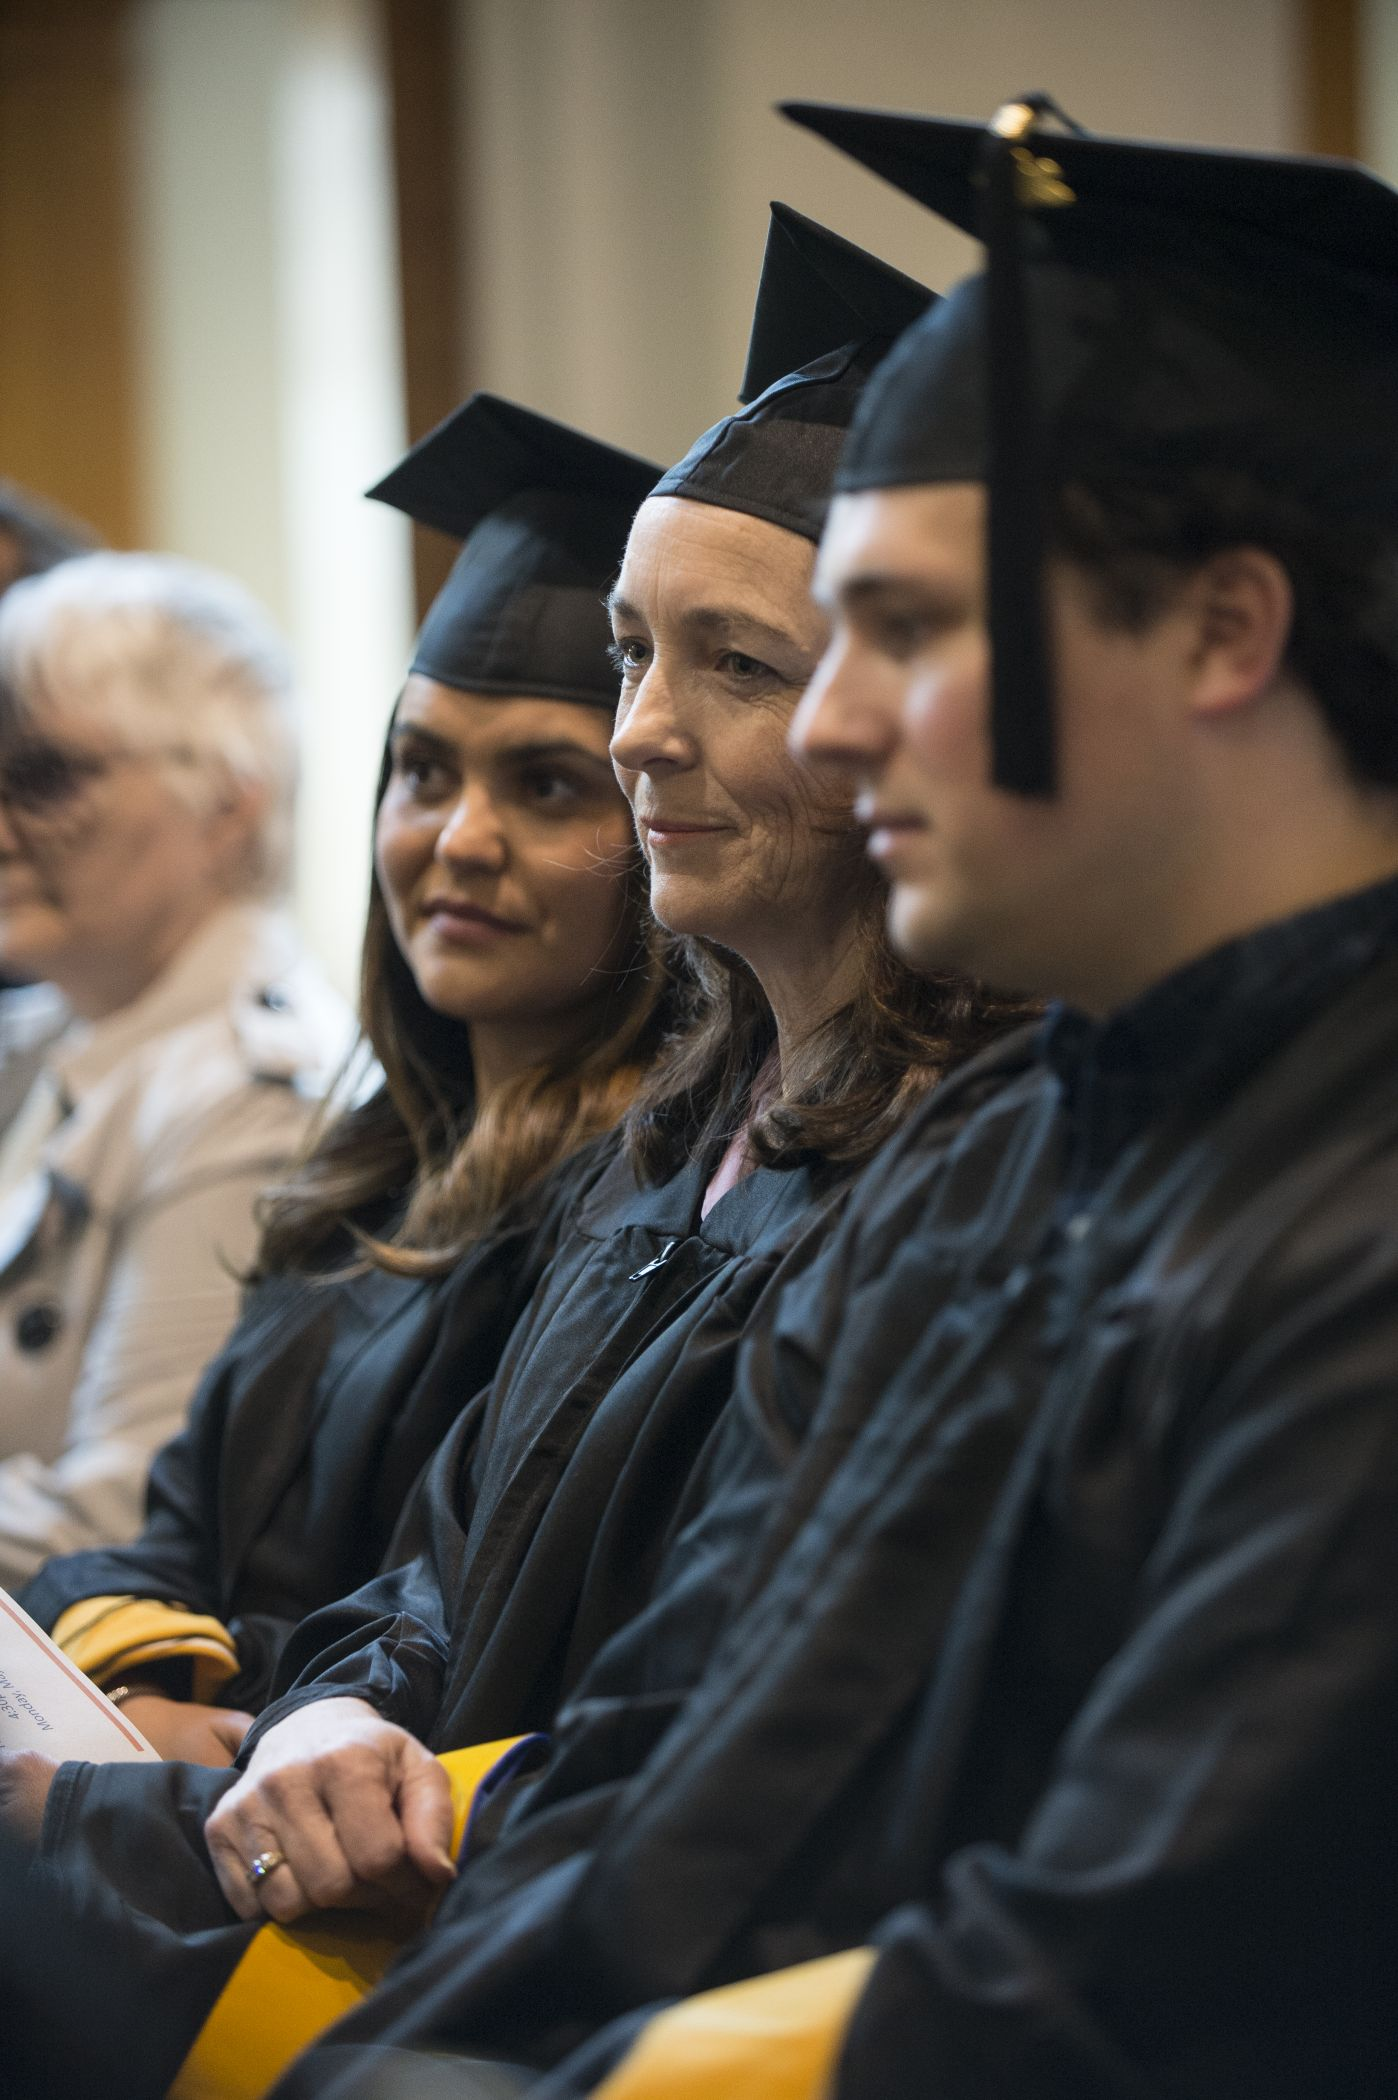 Three UNH MS students in graduation gowns sitting at their commencement